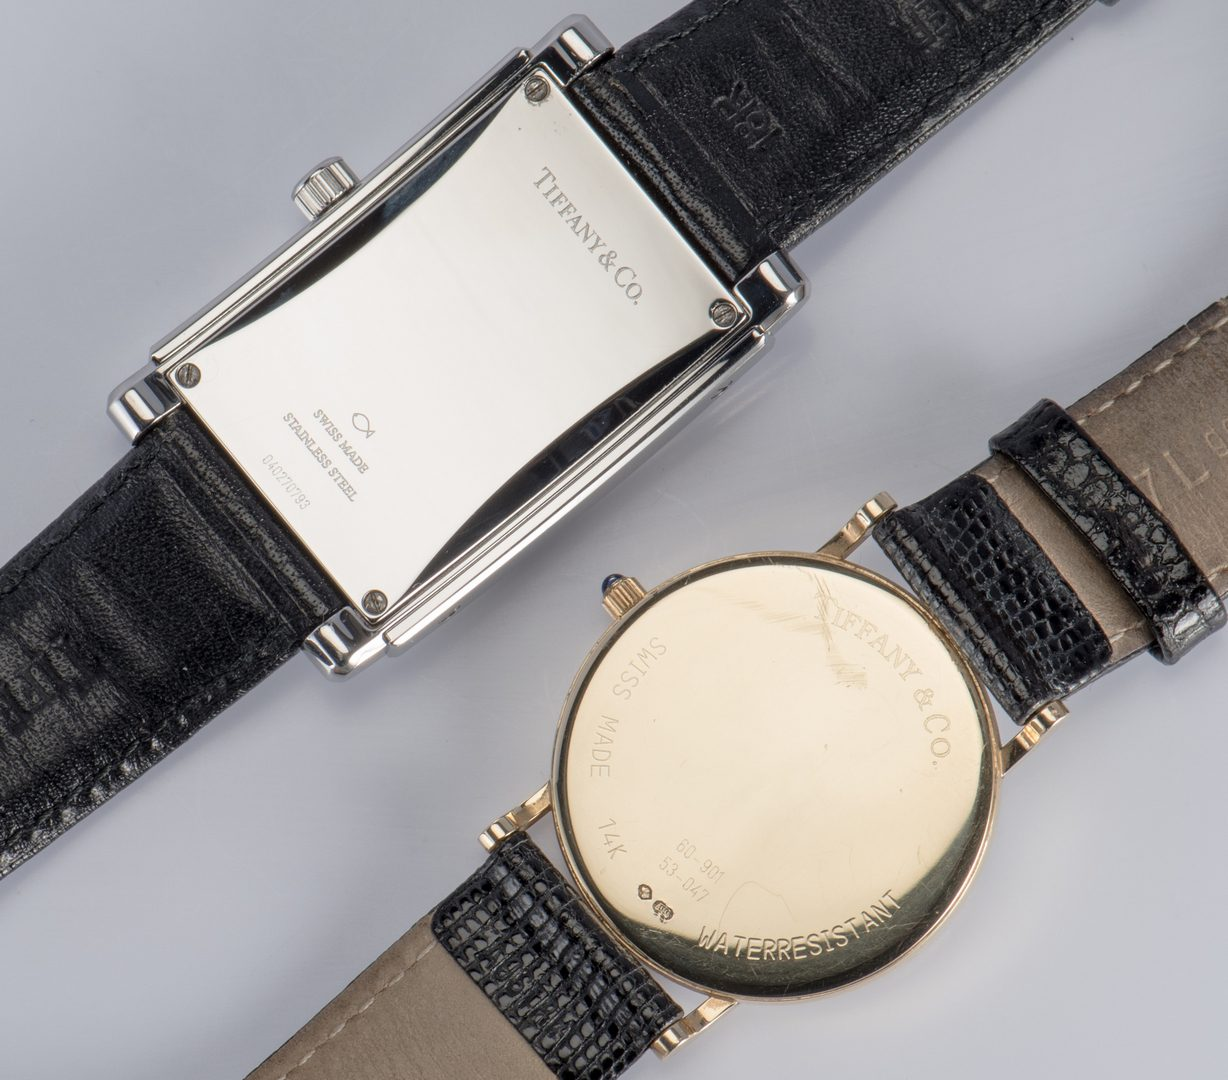 Lot 330: 2 Tiffany Men's Classic Watches